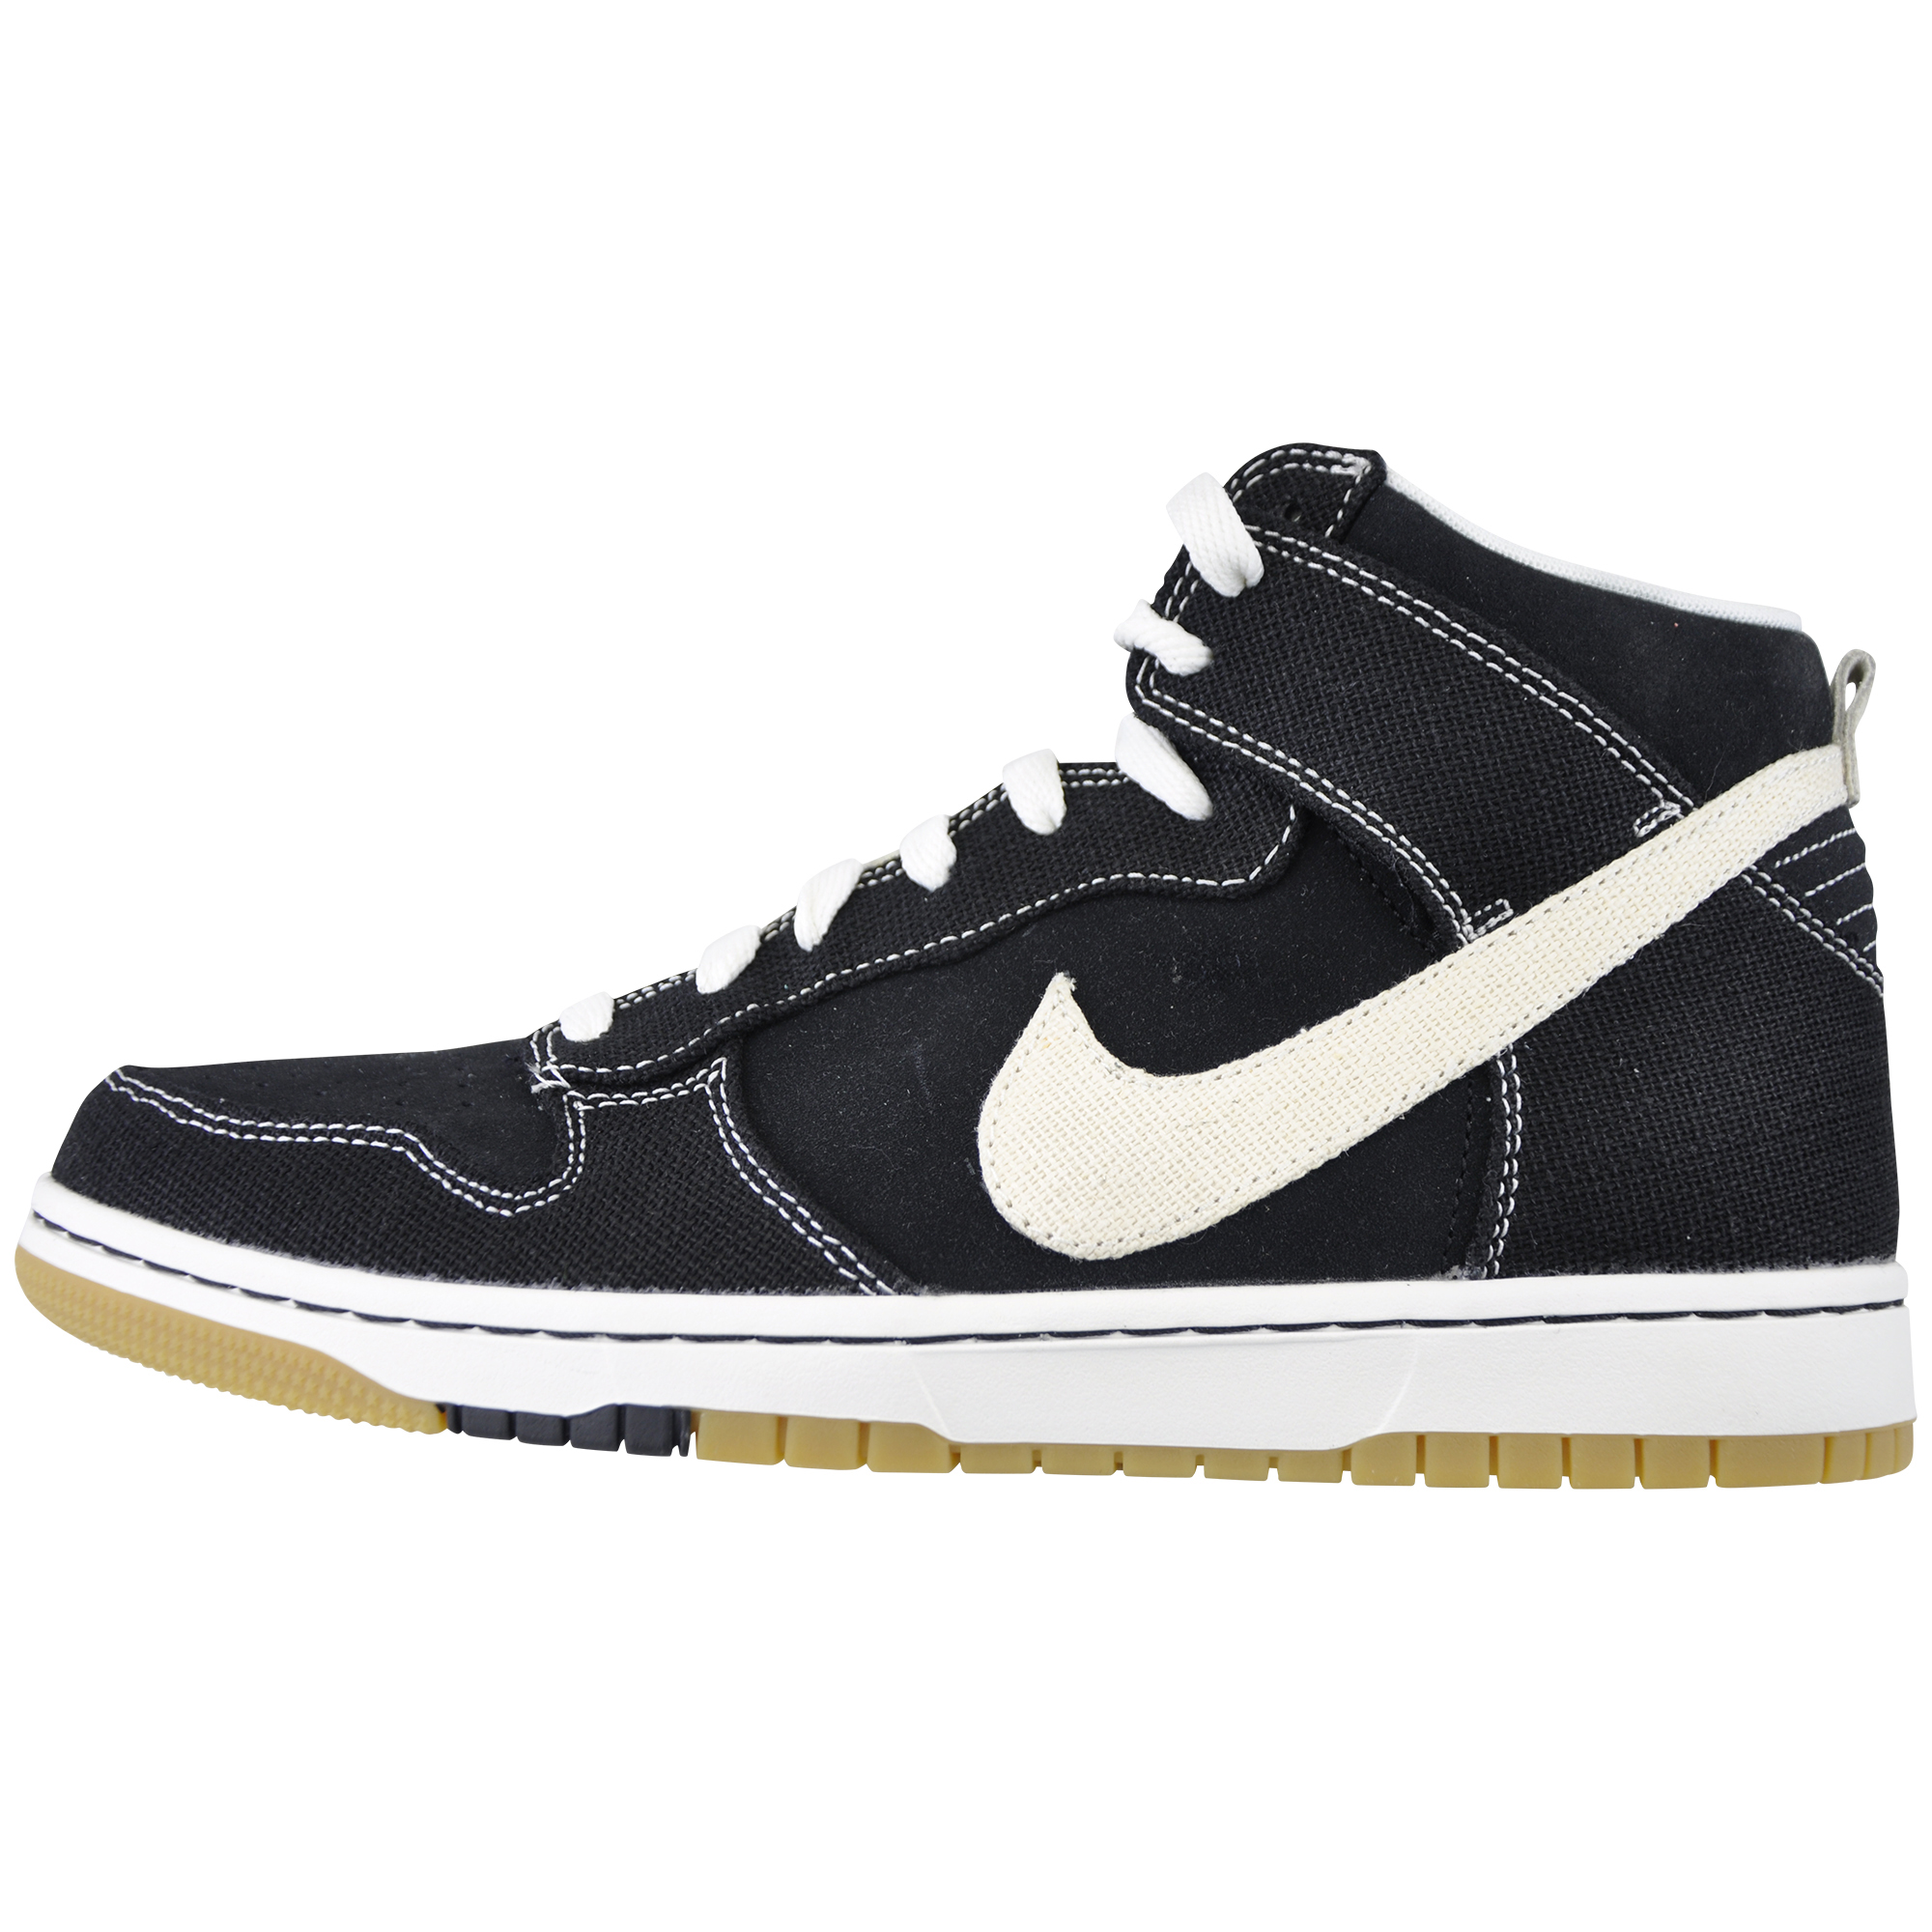 Ausverkauf Nike Air Force 1 One 15+ Modelle Son Mid of Force Dunk Low Mid Son High a93501